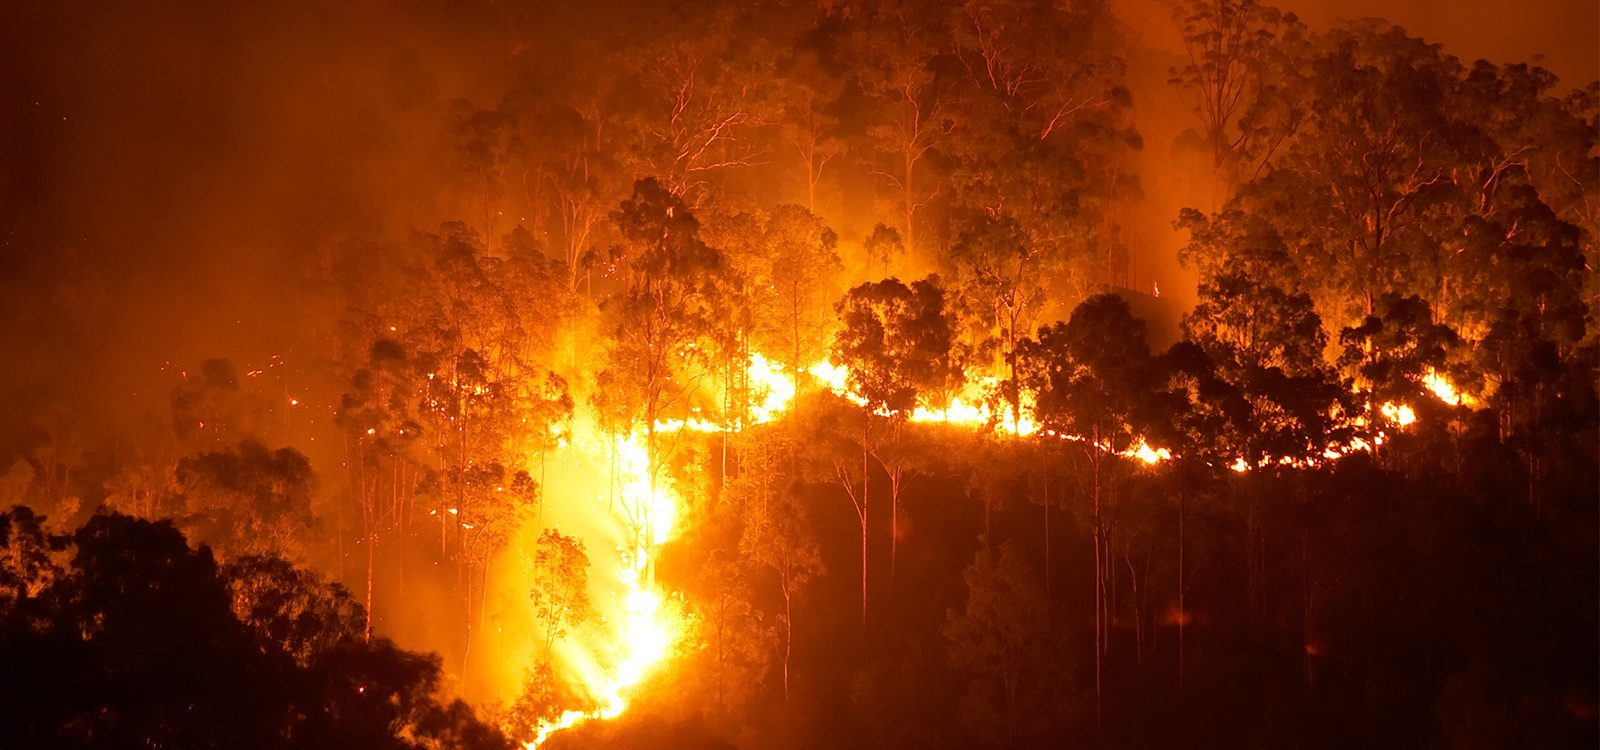 Insuring the inferno: addressing bushfire risk in a changing climate